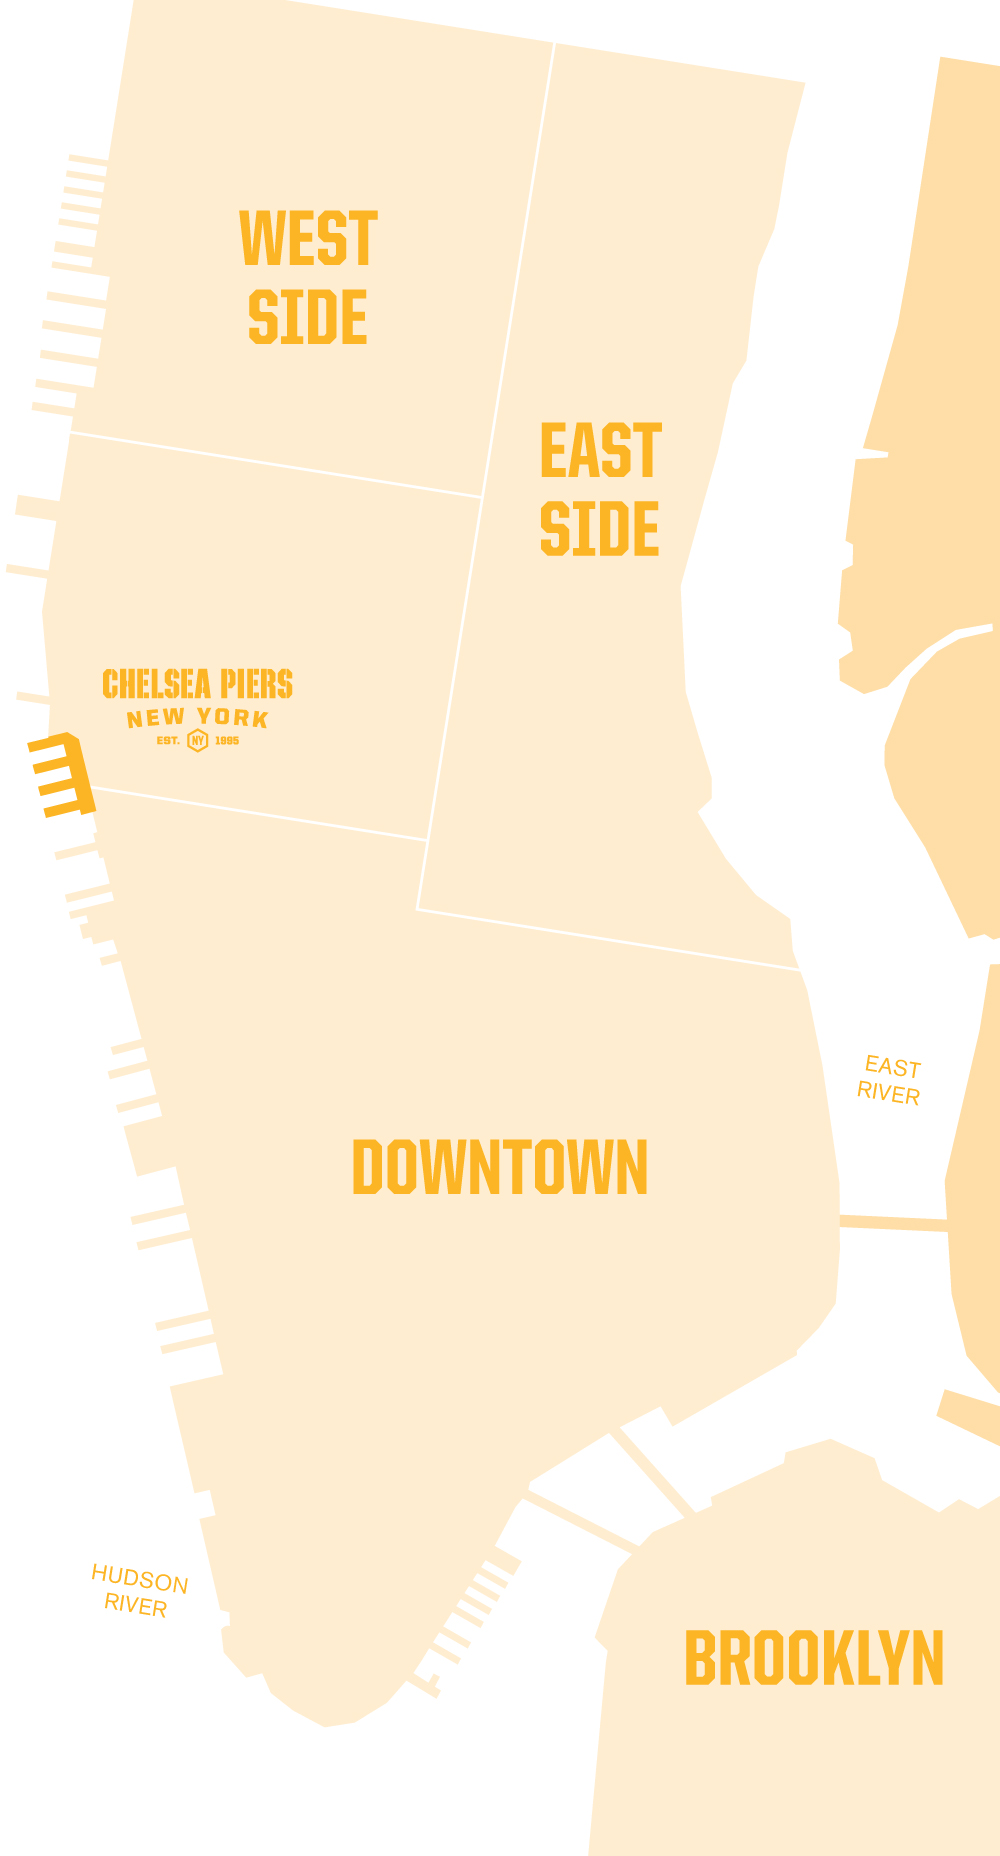 A Depiction of Manhattan and Northern Brooklyn and each general region (West Side, East Side, Downtown and Brooklyn) relative to Chelsea Piers New York,